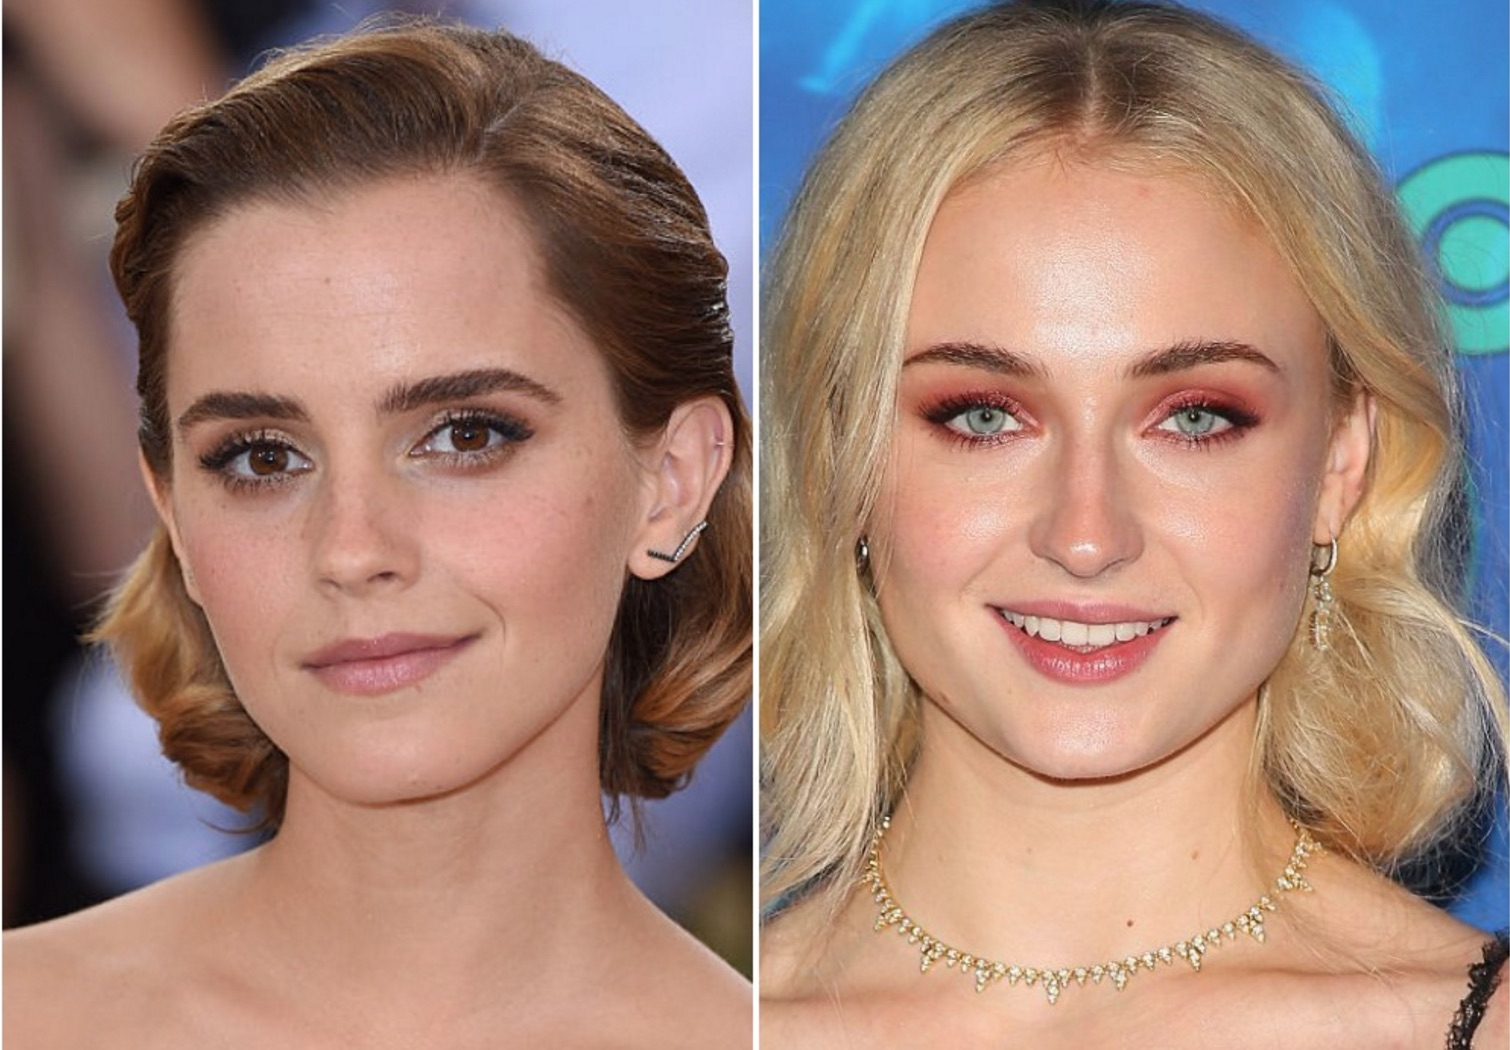 Sophie Turner just came to Emma Watson's defense on Twitter in the most badass #girlpower way possible